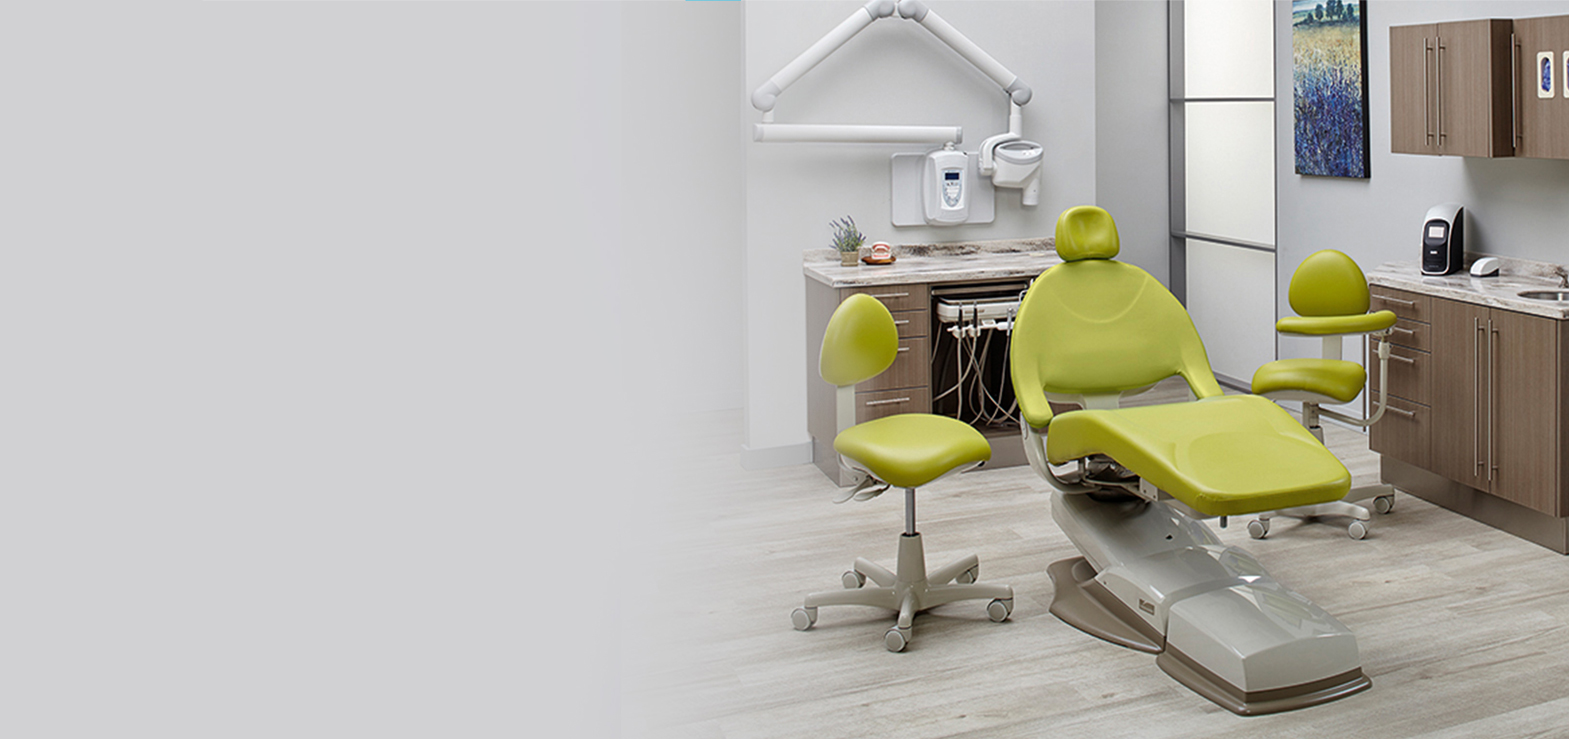 dental-category-page-header